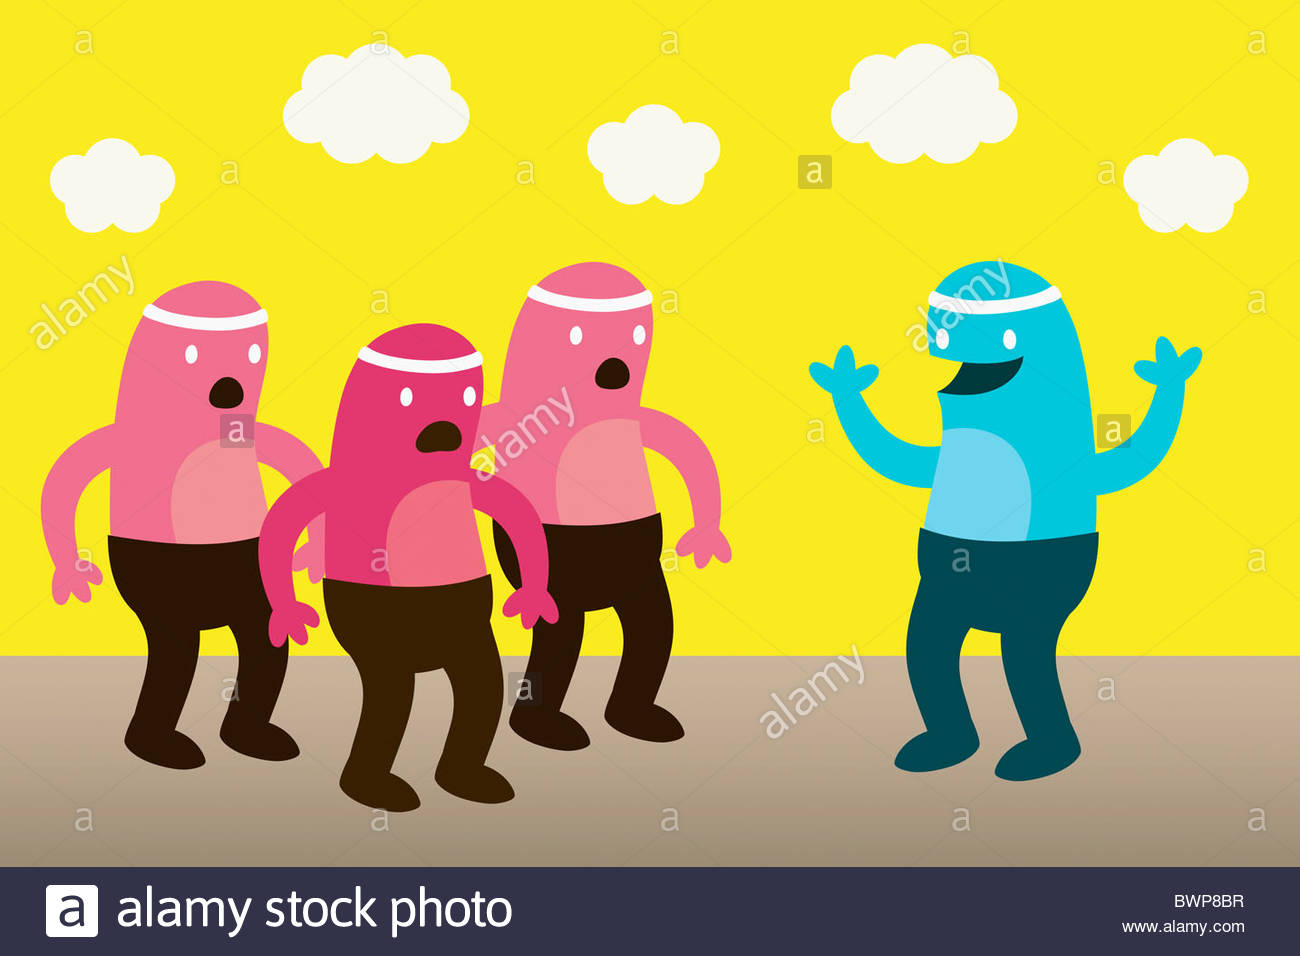 Smiling creature waving at surprised friends - Stock Image